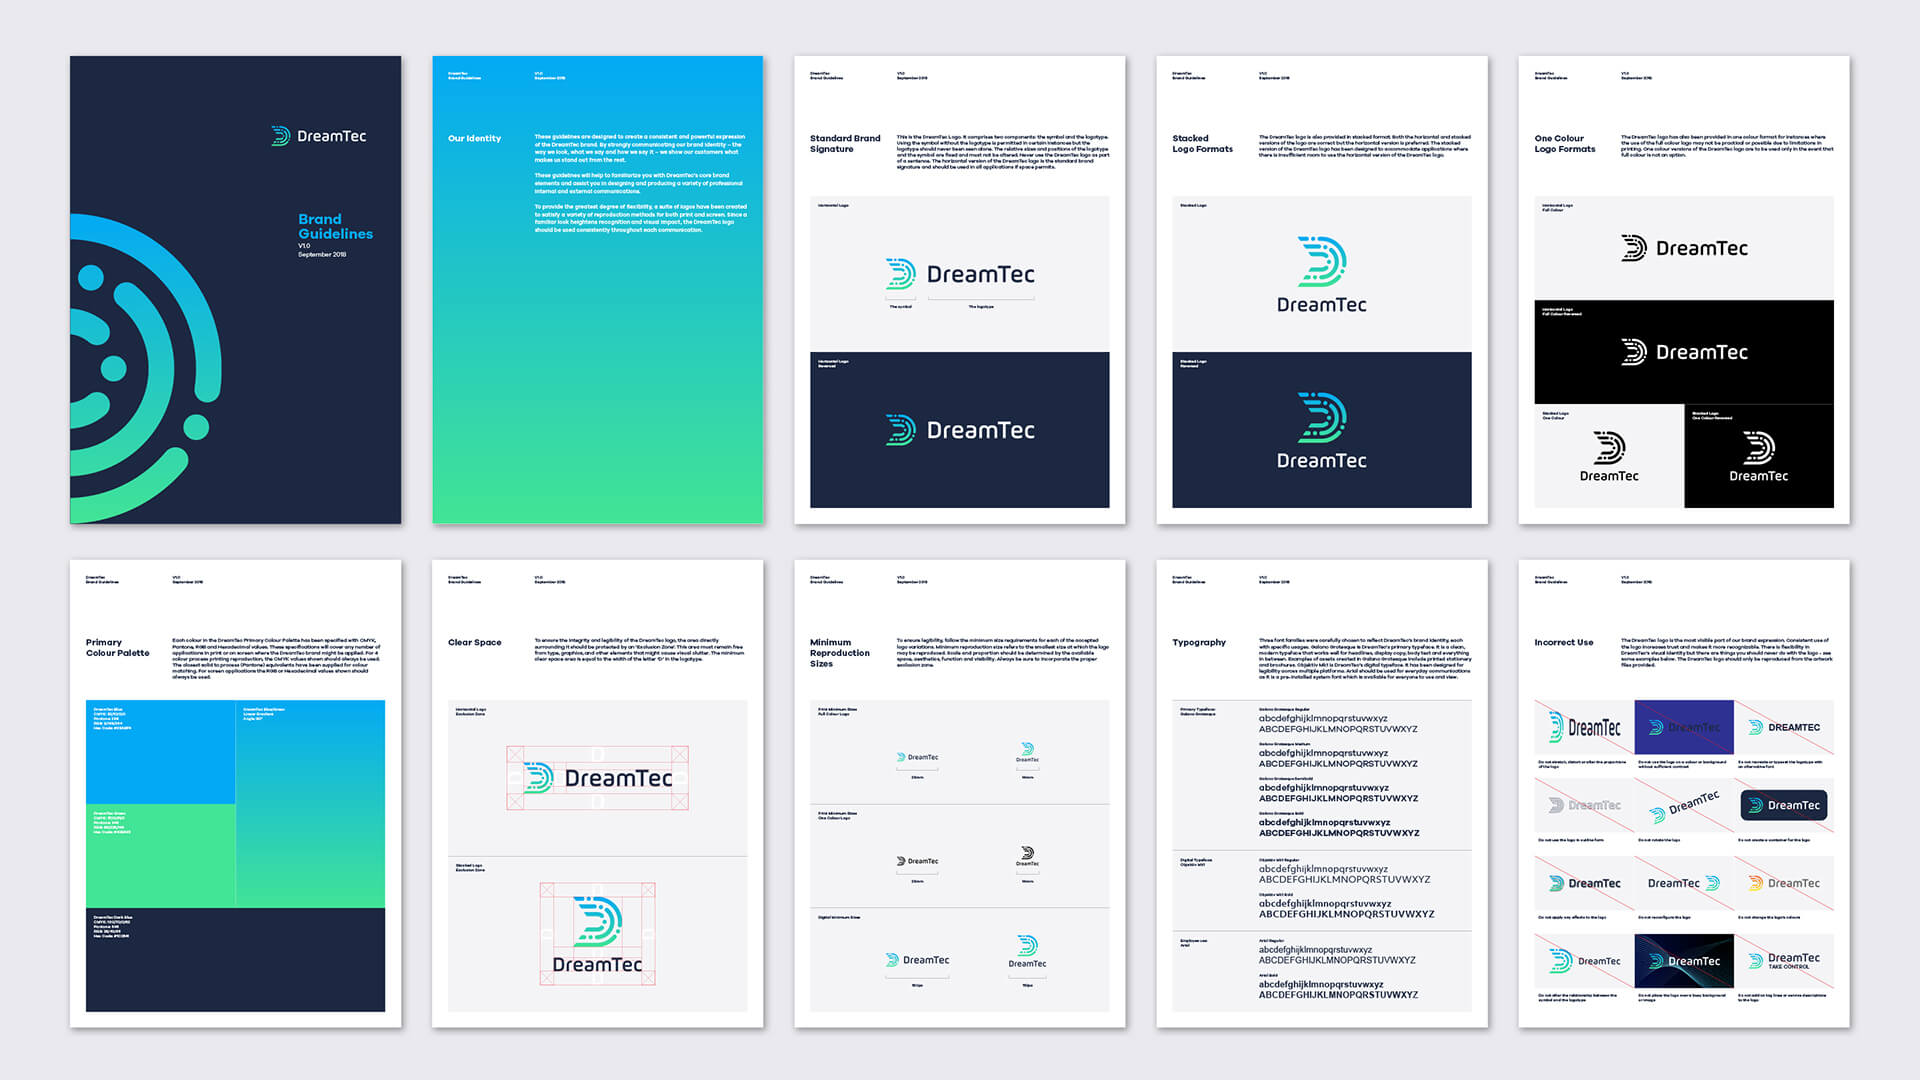 DreamTec brand guidelines